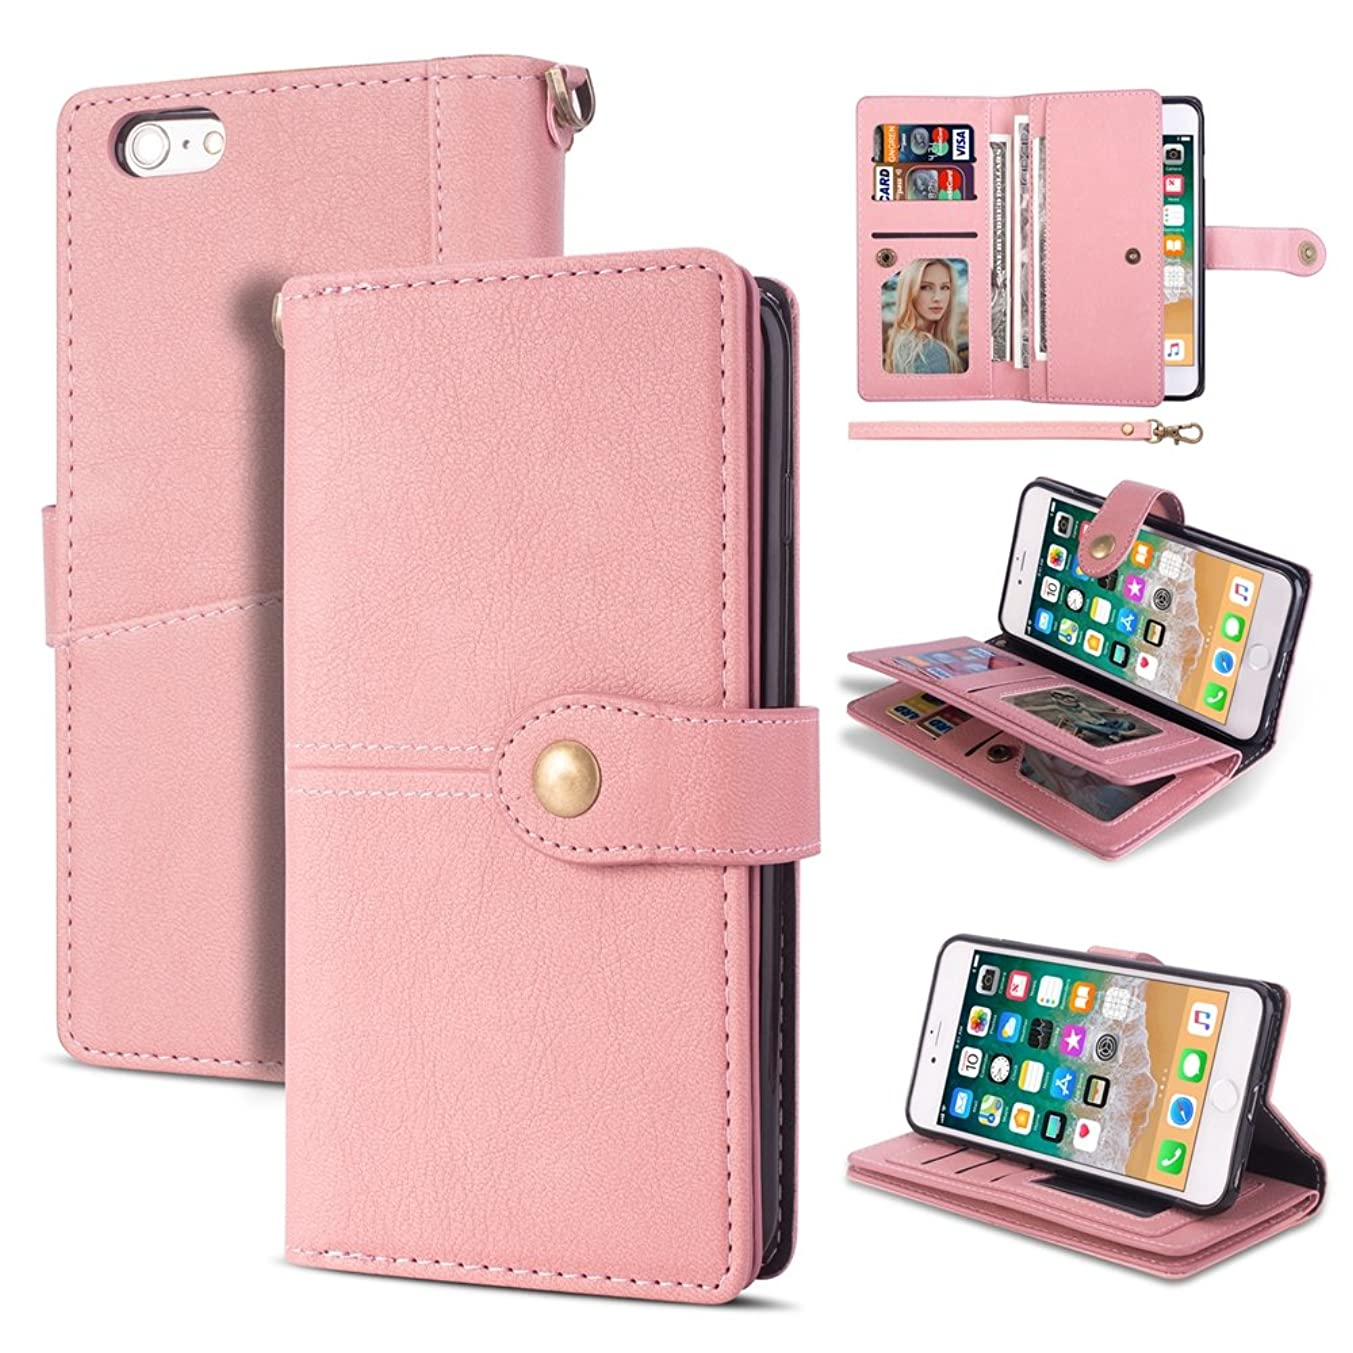 iPhone 6 Wallet Case,Kudex Folio Flip PU Leather Shock Absorption Defender Full Protection Impact Resistant Magnetic Closure Card Slot Stand with Wrist Strap Case Cover for iPhone 6/6S (Pink)